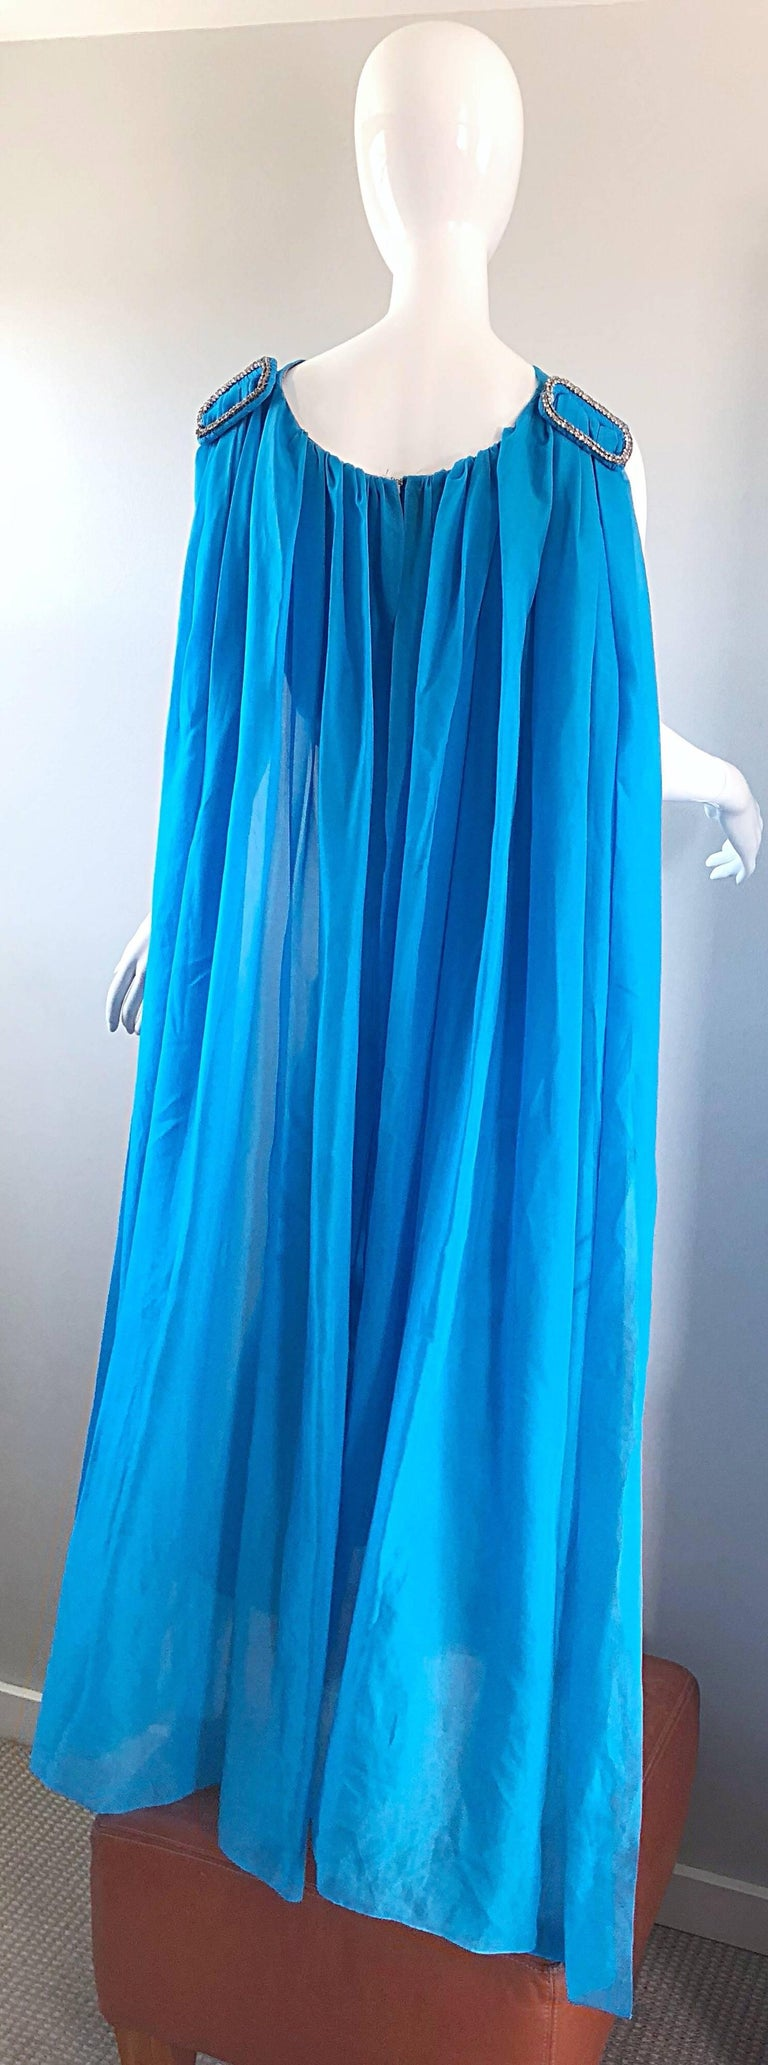 Incredible late 60s turquoise blue chiffon rhinestone encrusted gown with attached cape! Wonderful tailored fit with a fitted bodice and skirt. Attached semi sheer chiffon cape features a large rhinestone encrusted buckle on each back shoulder.